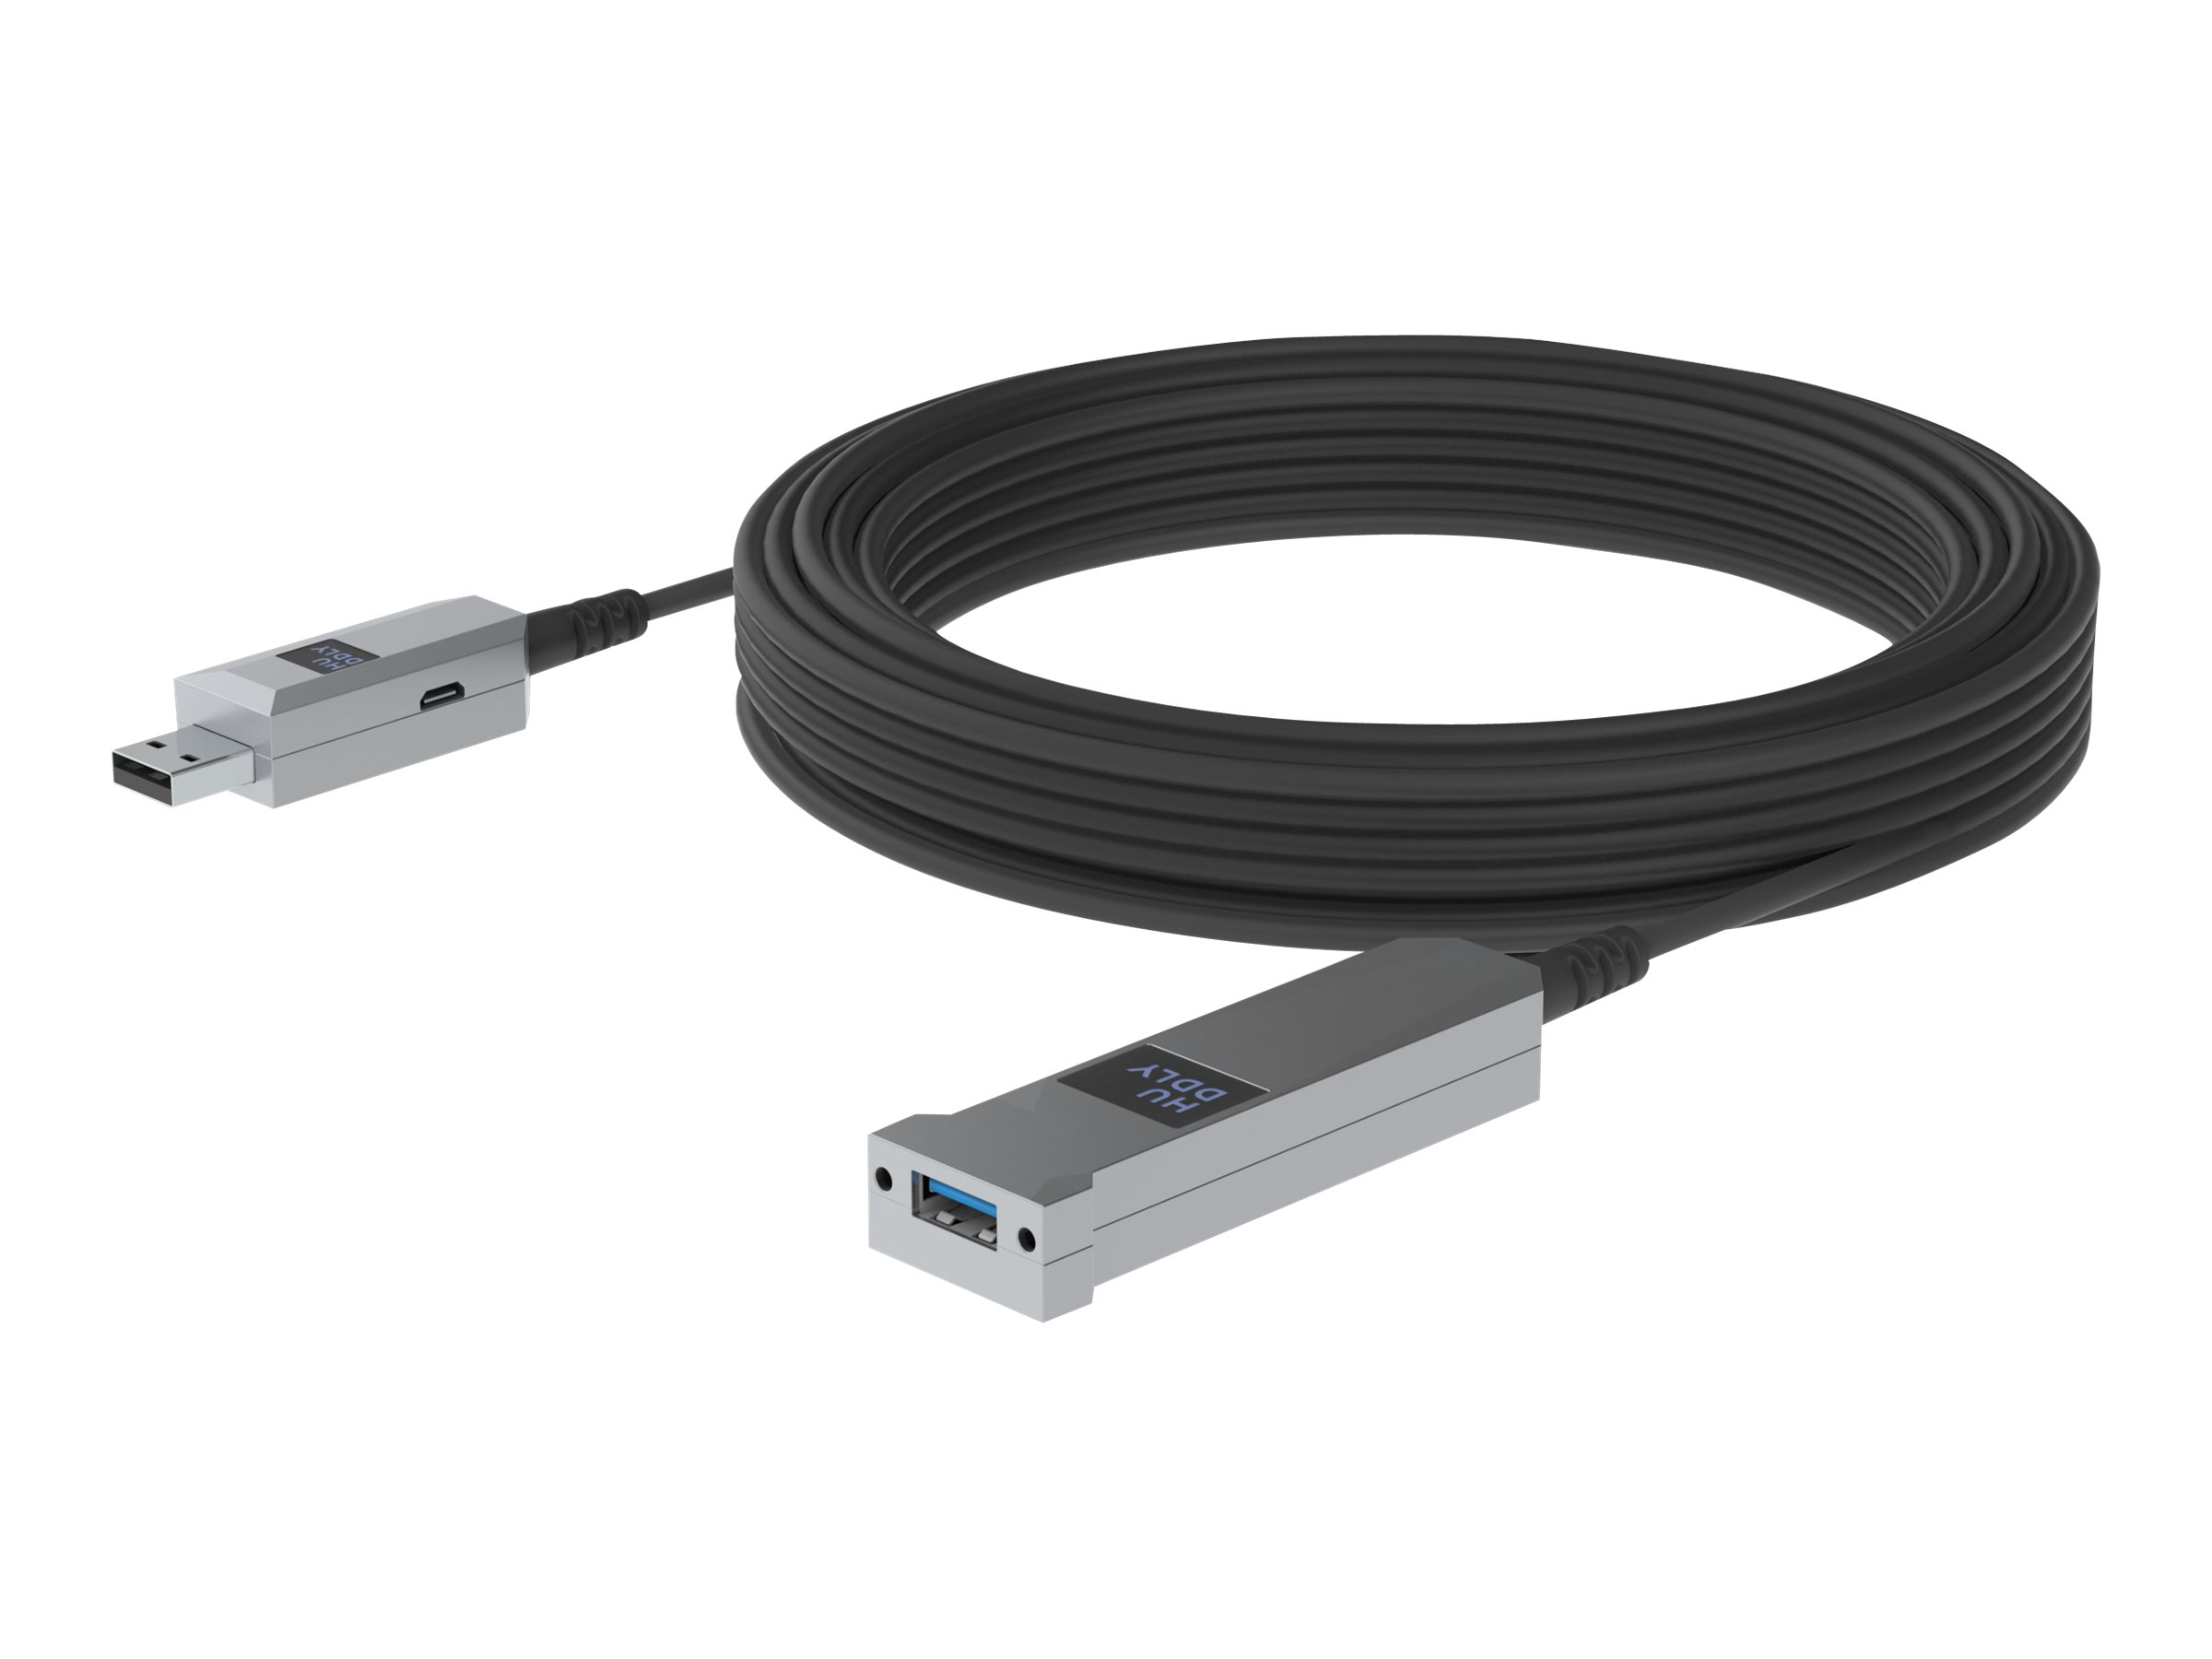 Huddly - USB-Kabel - USB Typ A (M) bis USB Typ A (W) - USB 3.1 Gen 1 - 5 m - Active Optical Cable (AOC)